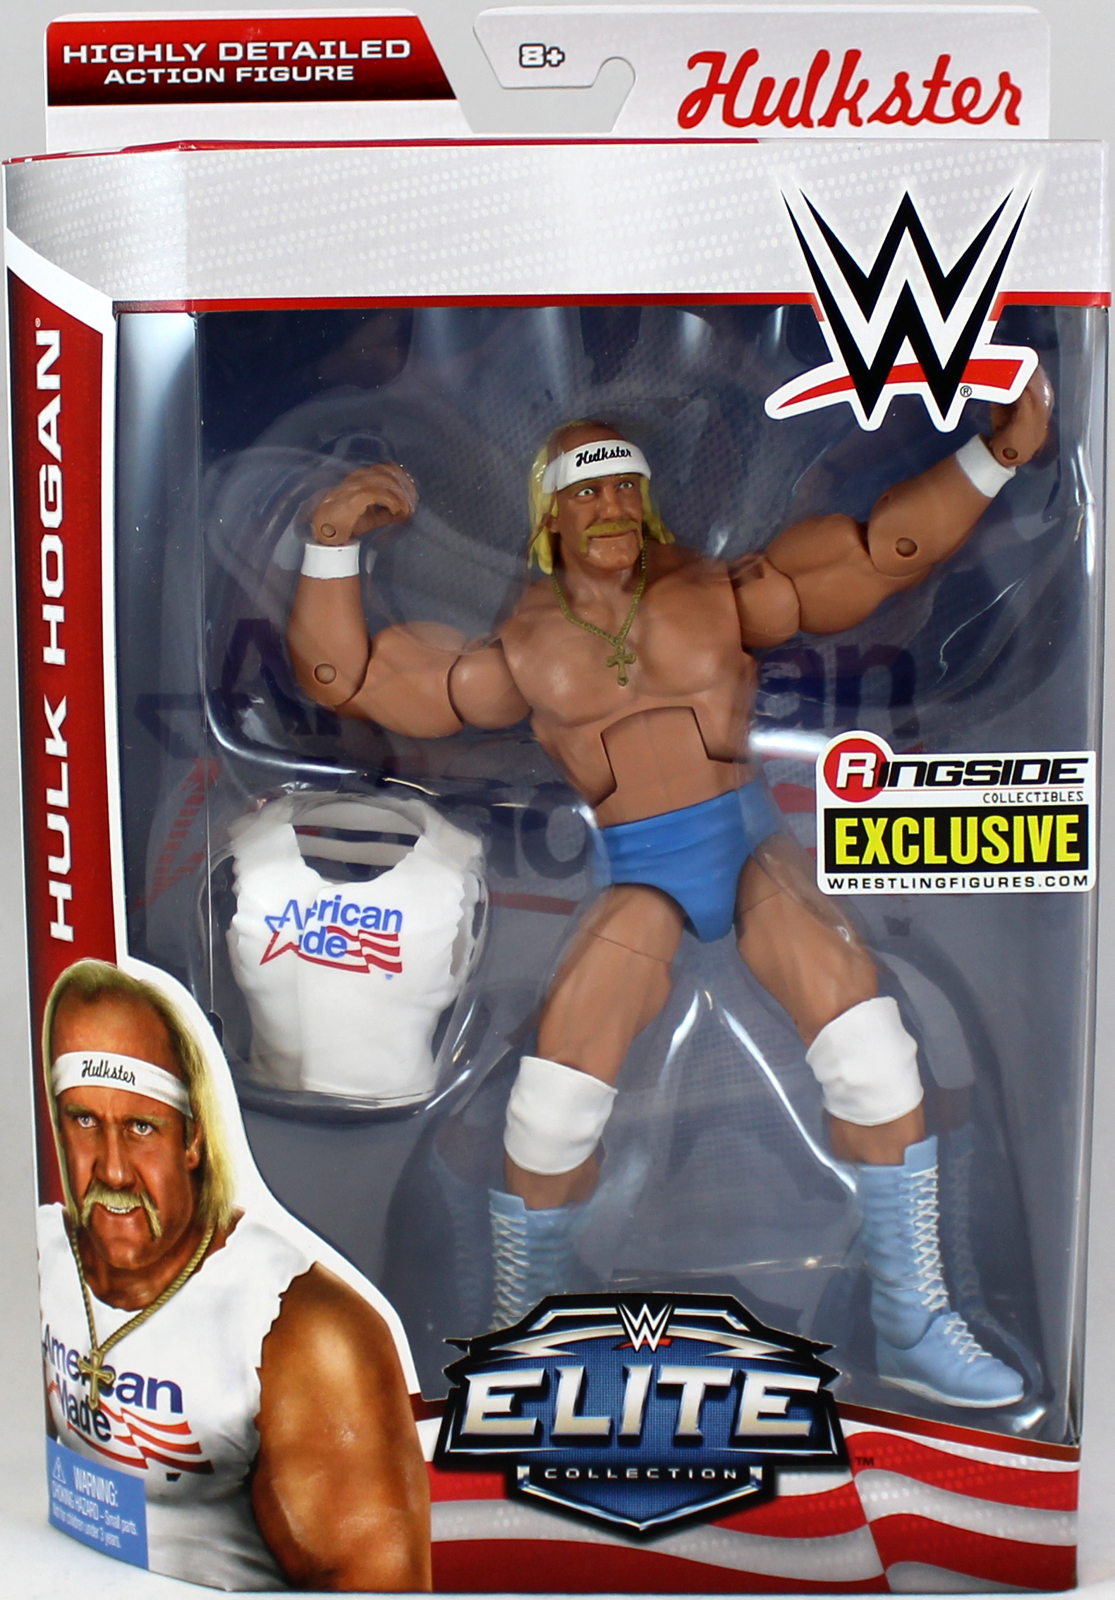 American Made Hulk Hogan Ringside Exclusive WWE Toy Wrestling Action Figure by